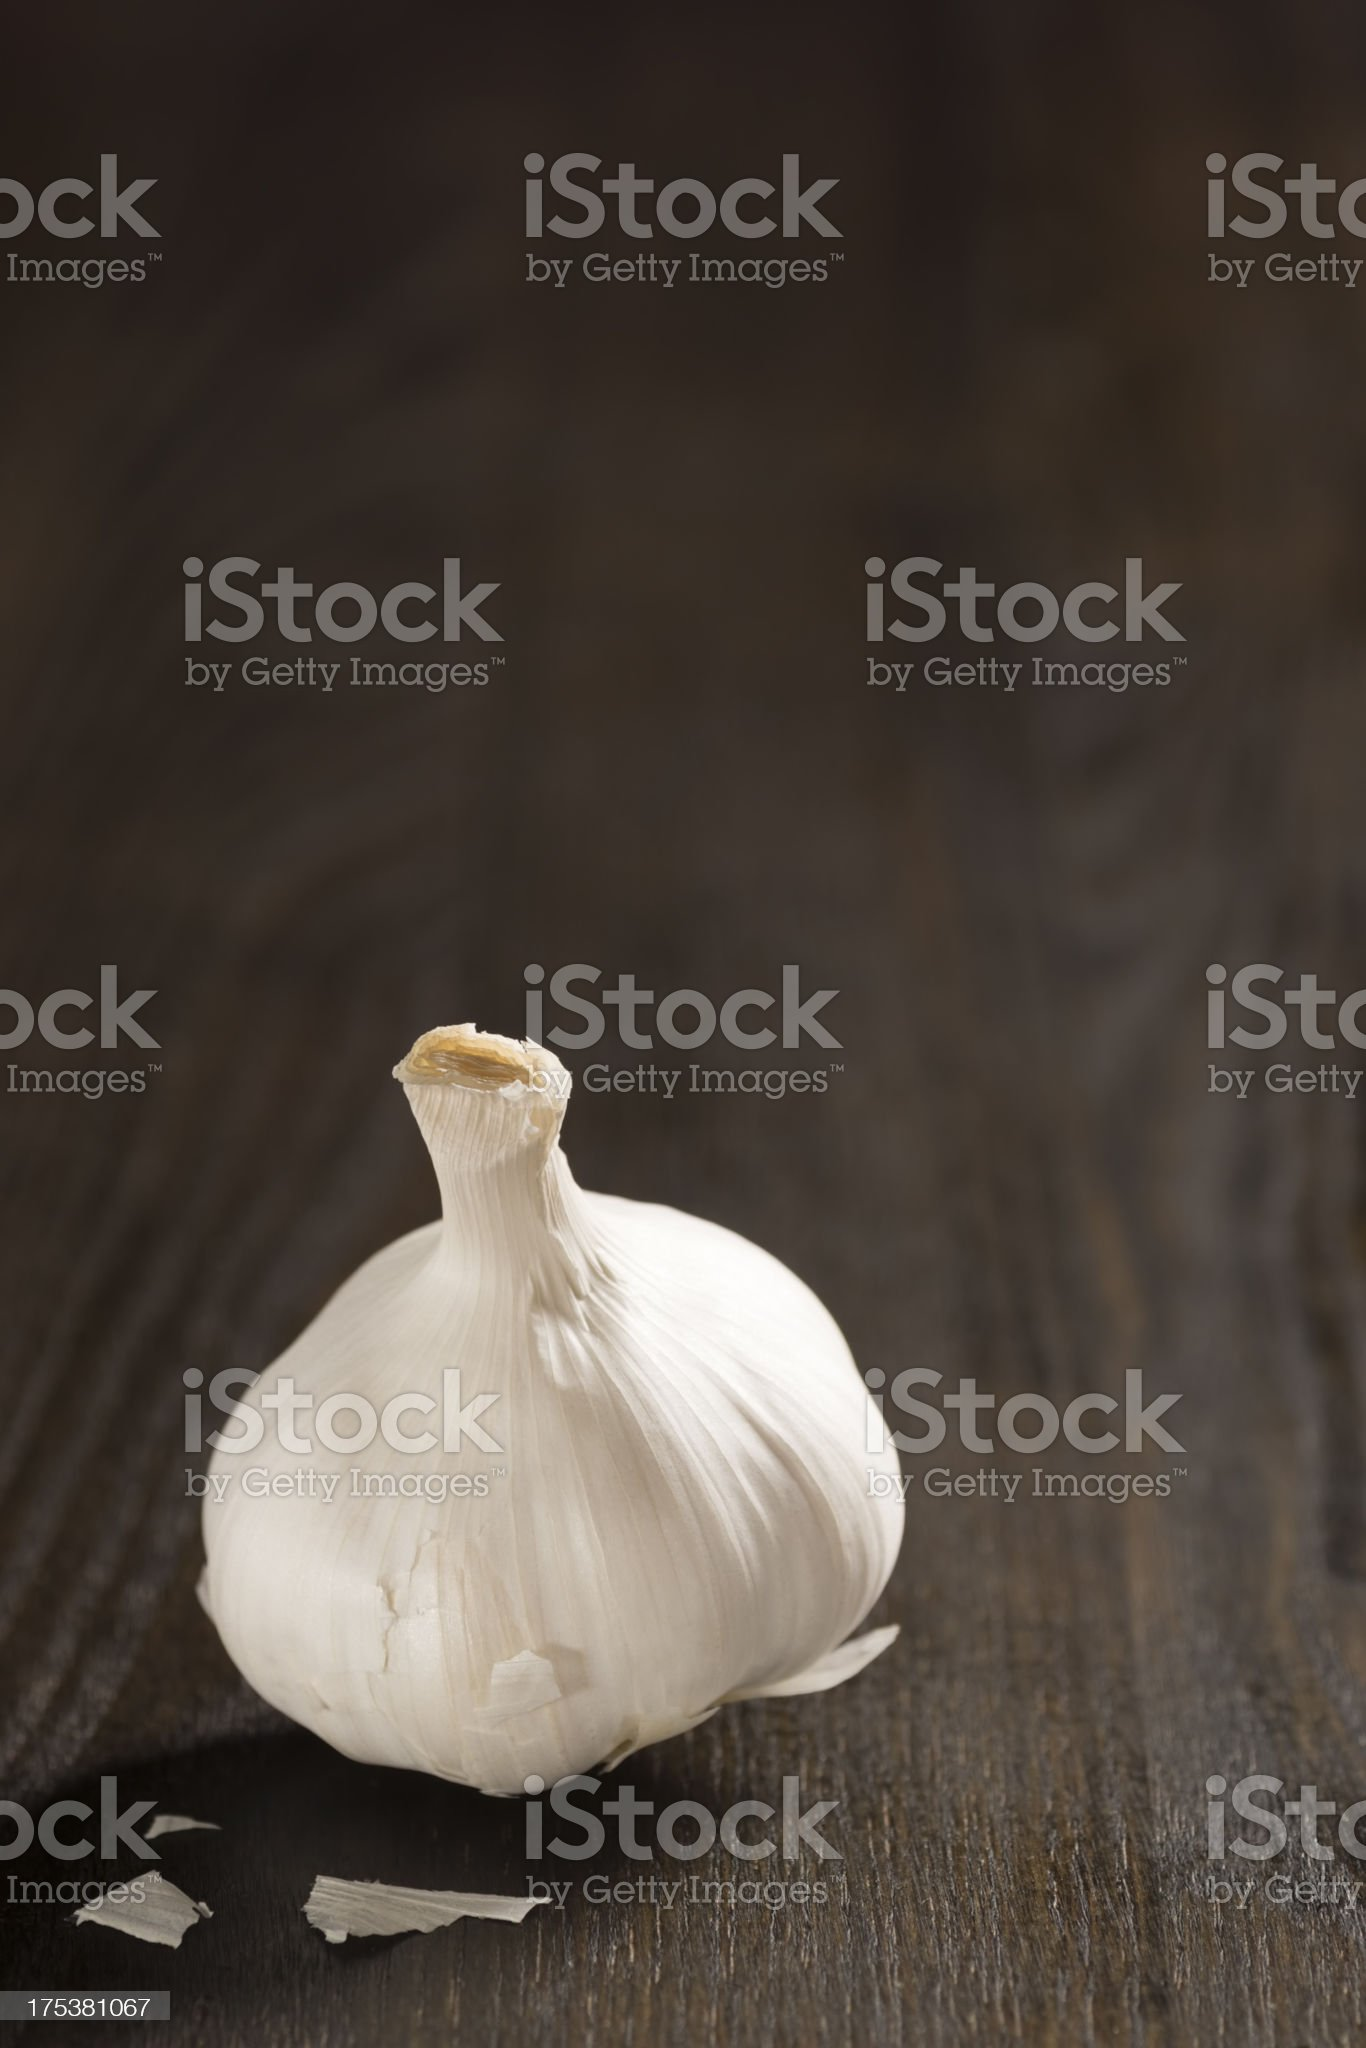 Solitary Garlic Bulb with Copy Space royalty-free stock photo